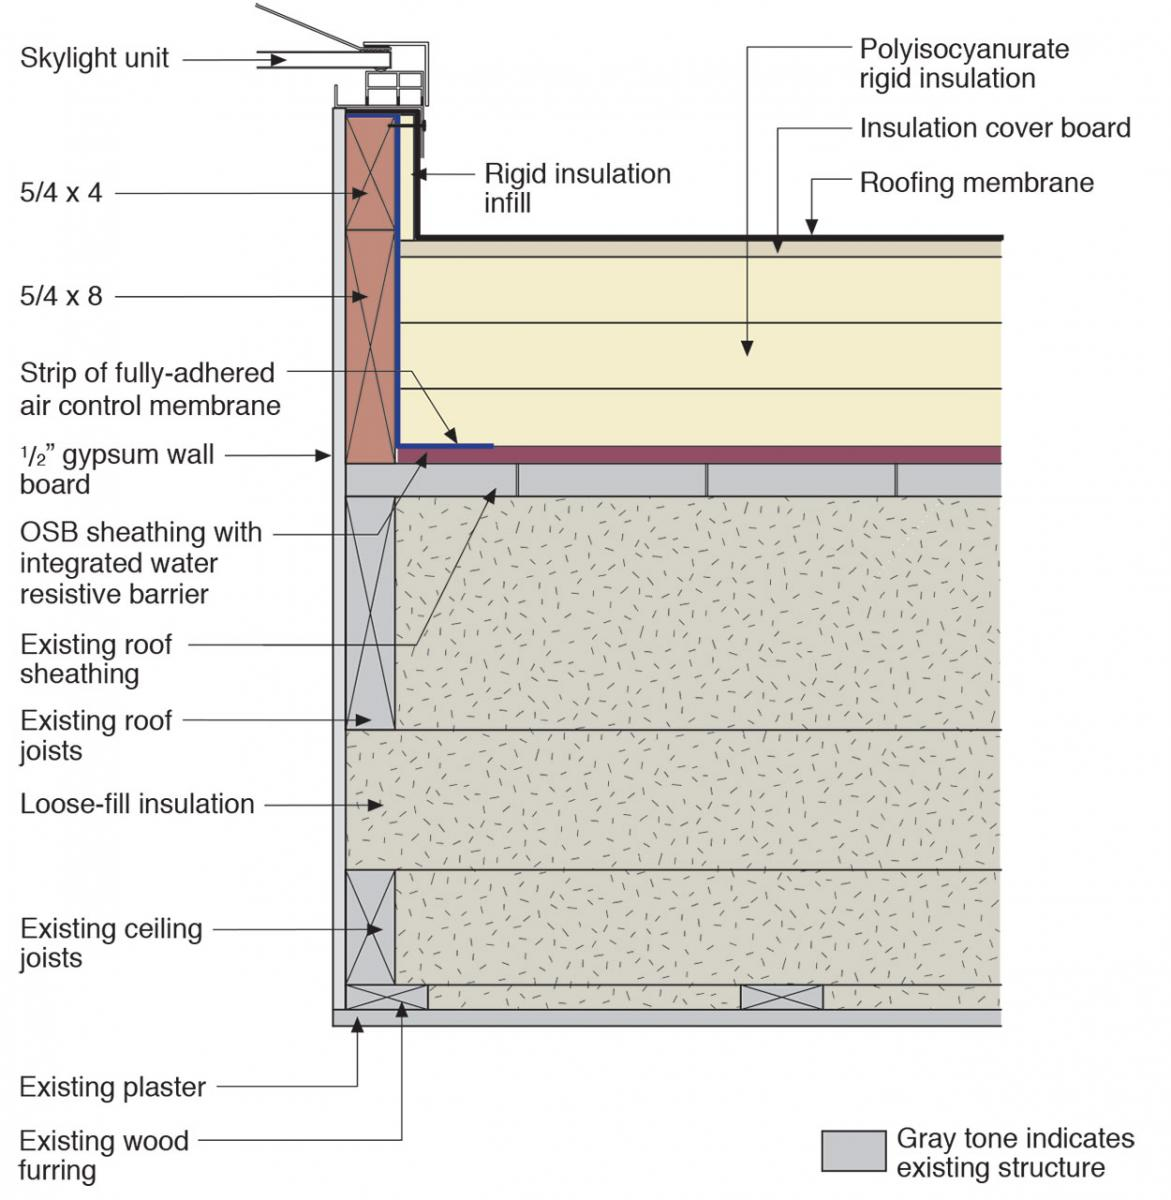 Water management details at a mechanical curb for a skylight